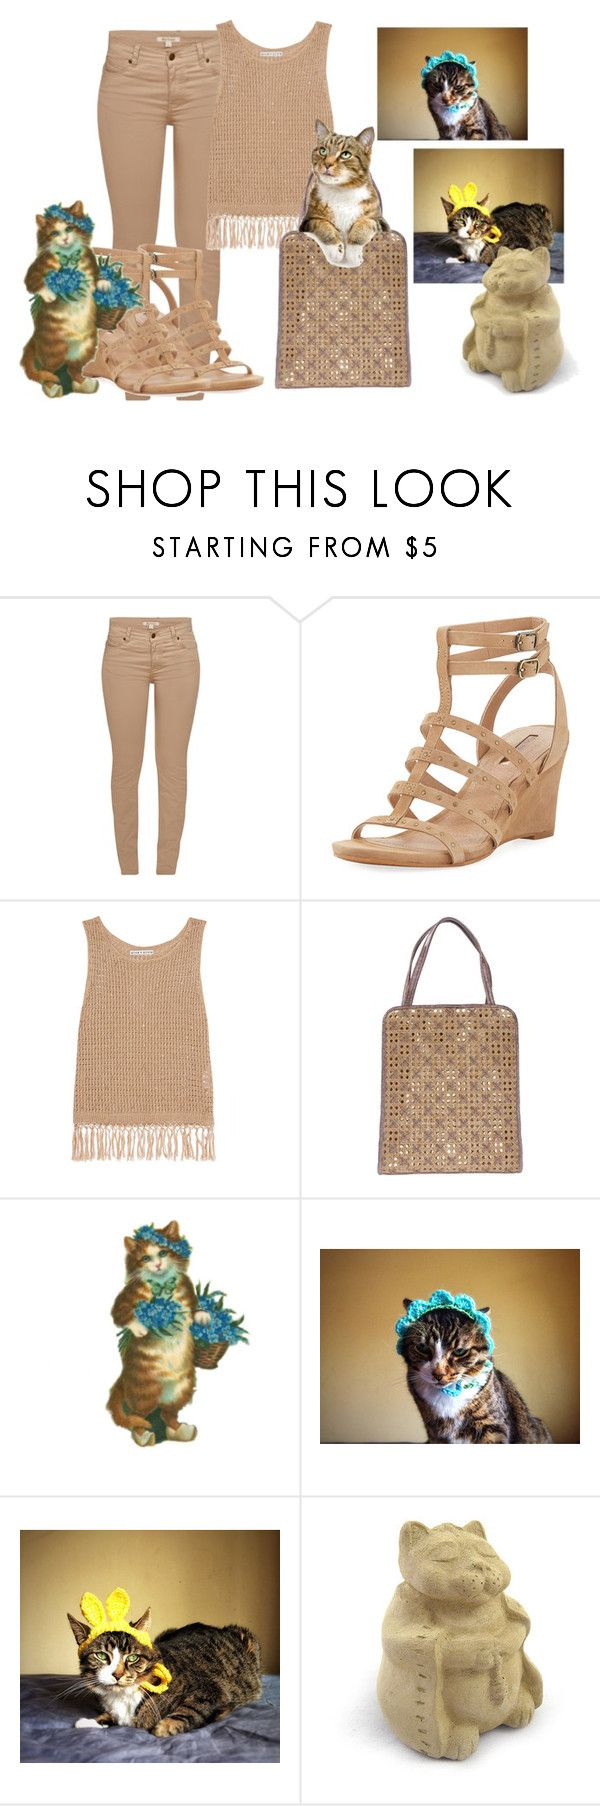 """Untitled #228"" by earthspalette ❤ liked on Polyvore featuring Barbour, Elie Tahari, Alice + Olivia and COMOLLI COPPA"